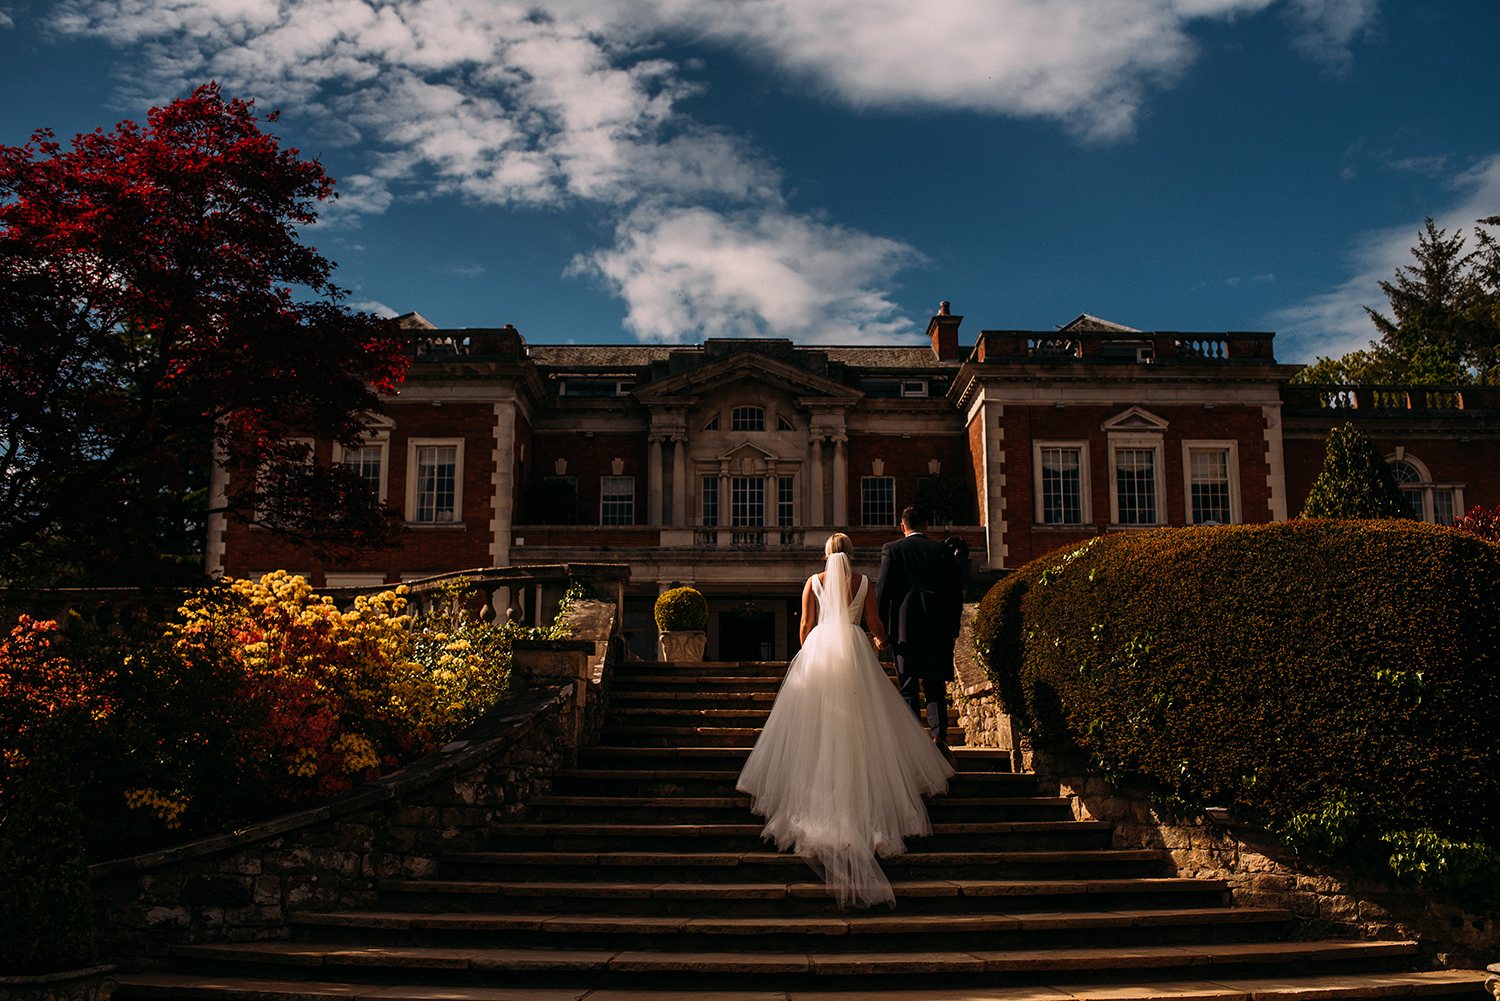 Bride and groom walk back up the steps at Eaves hall